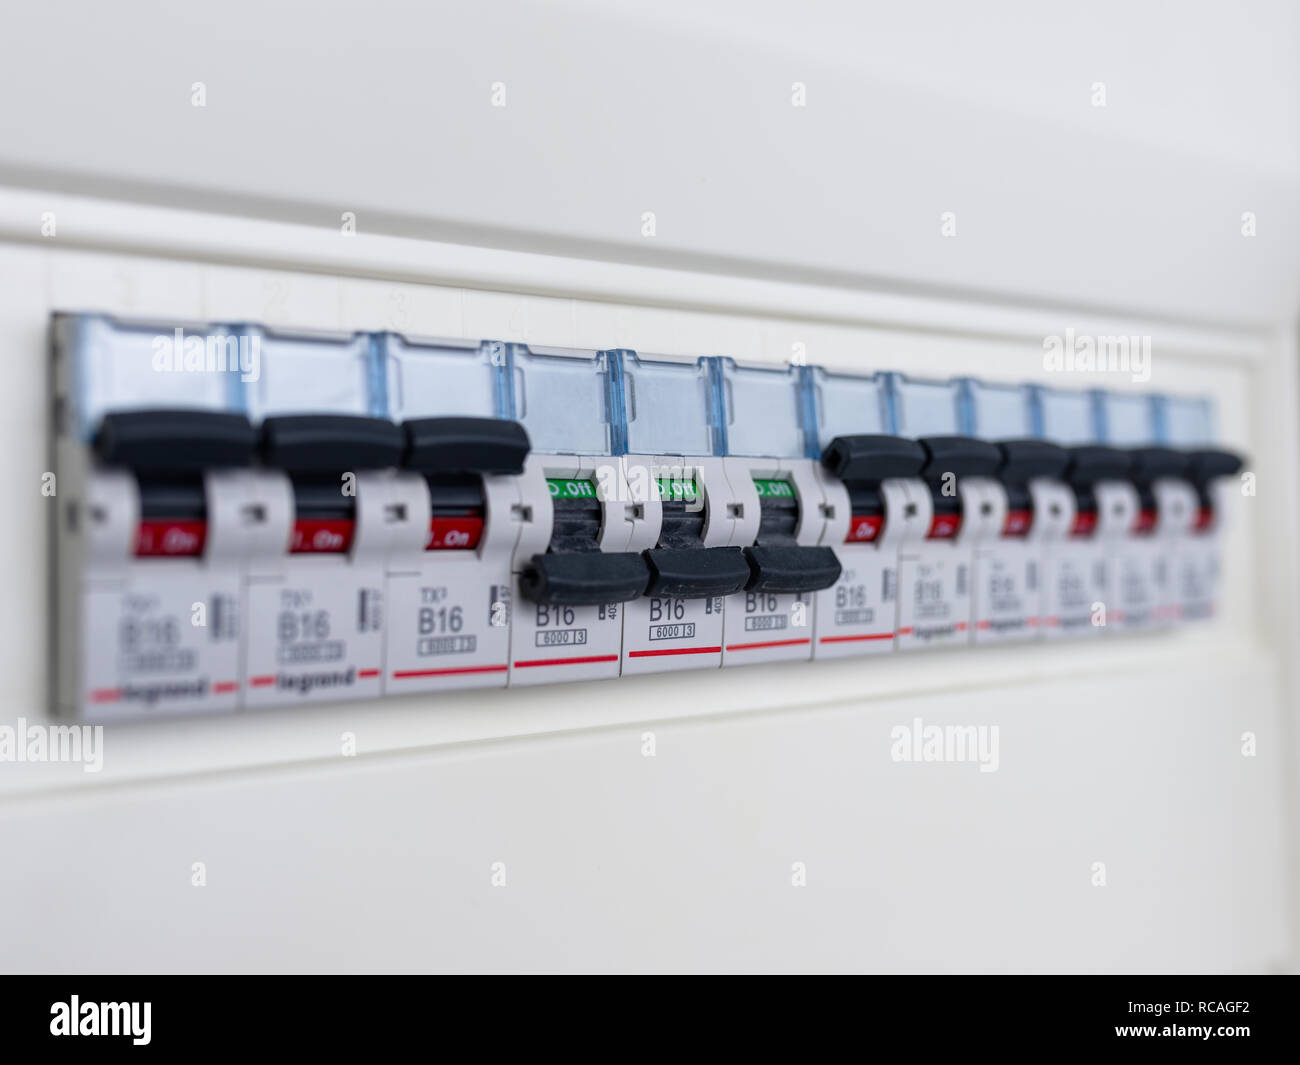 Switches in electrical fuse box. Many black circuit breakers ... on fuse adapters, fuse cover, fuse tool, relay box, contactor box, circuit breaker box,